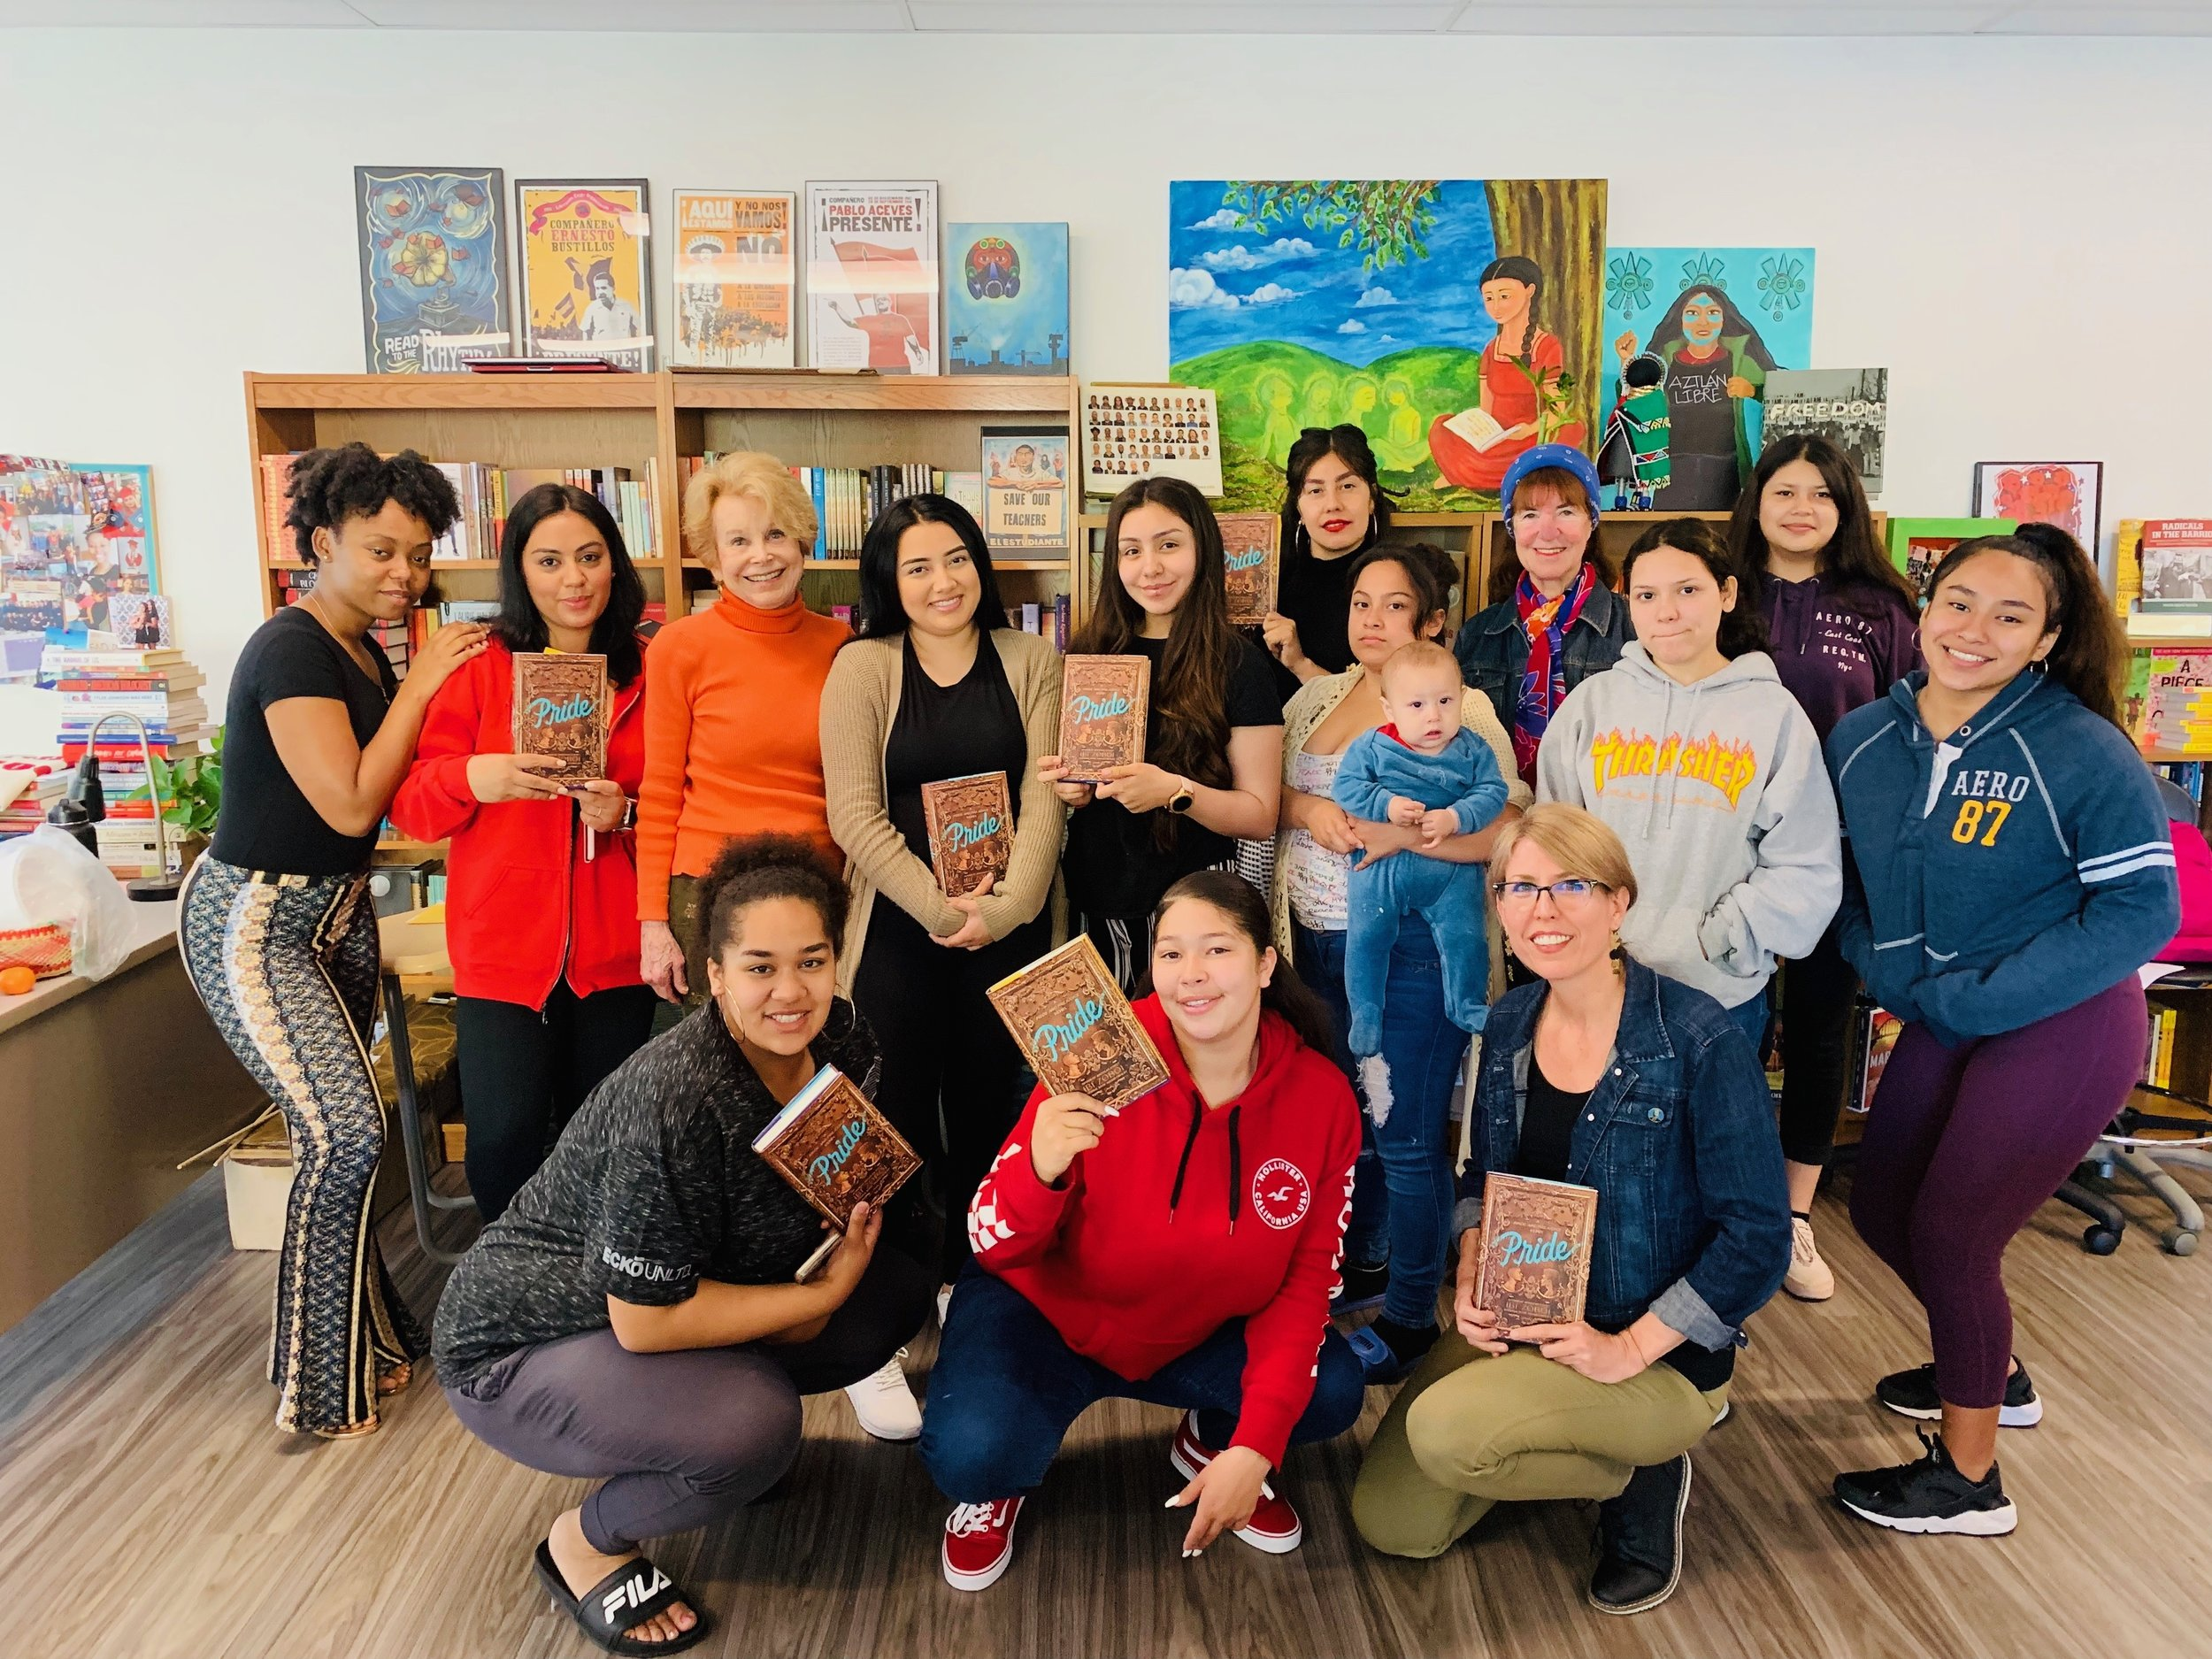 An image of Dawn with her students as they hold up copies of the book,  Pride .